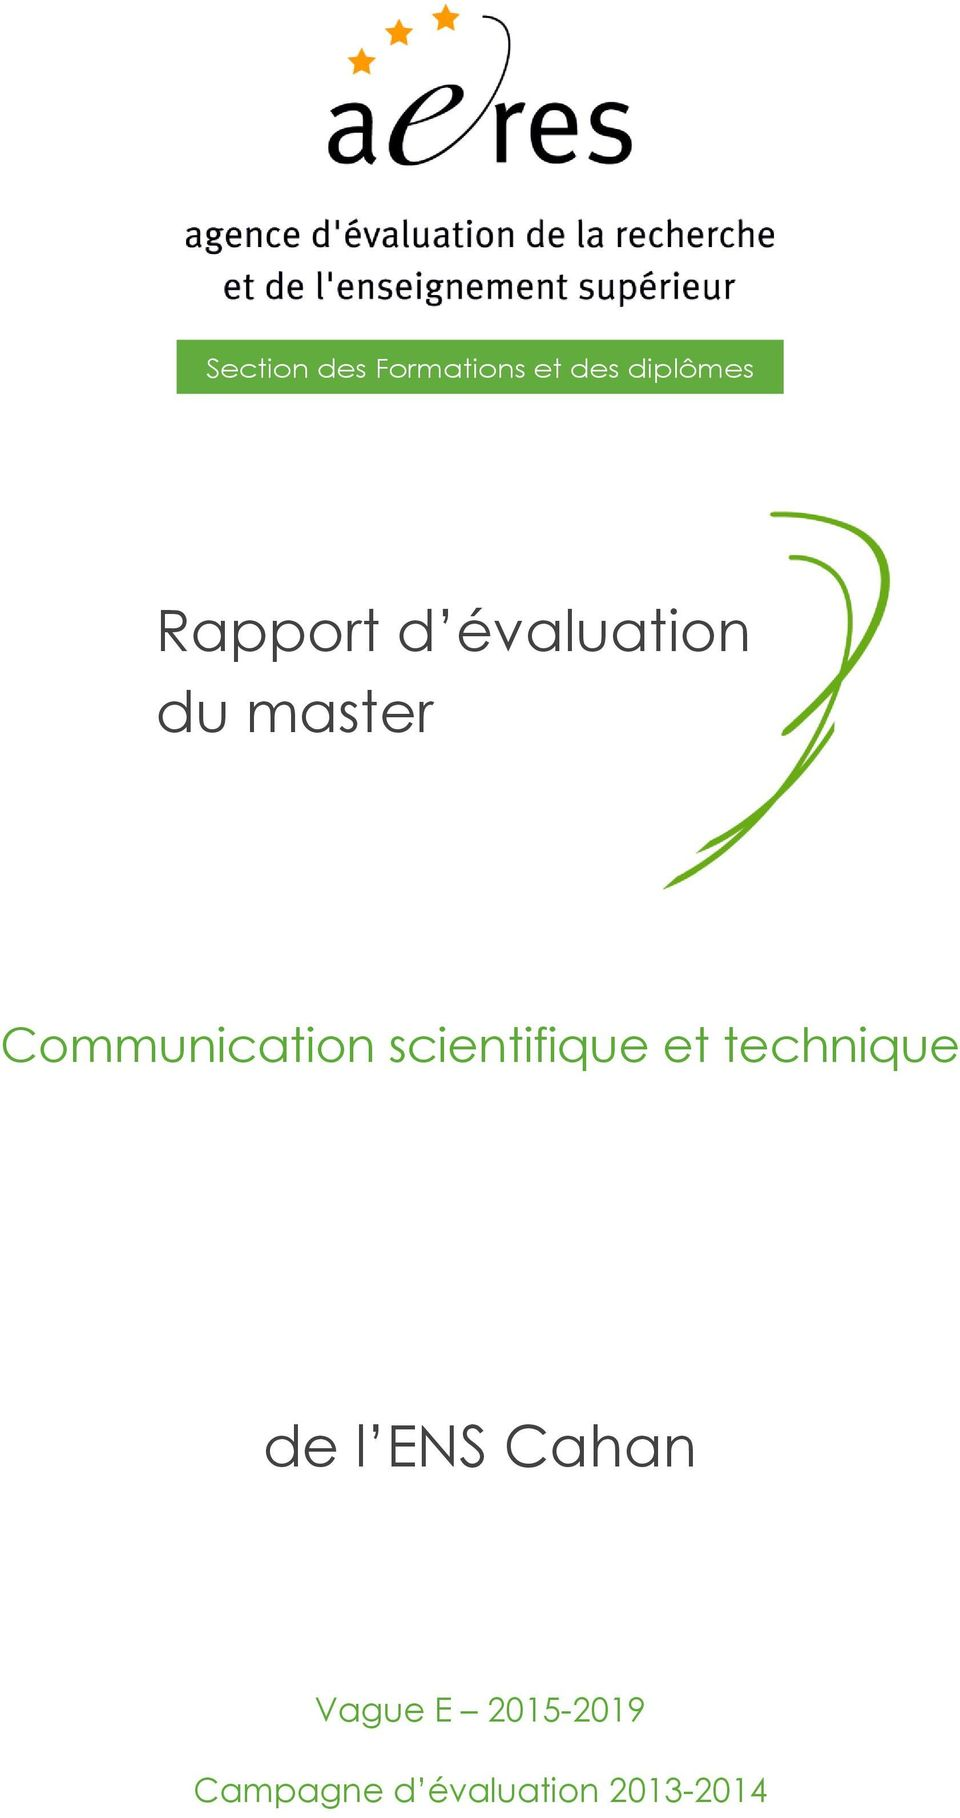 Communication scientifique et technique de